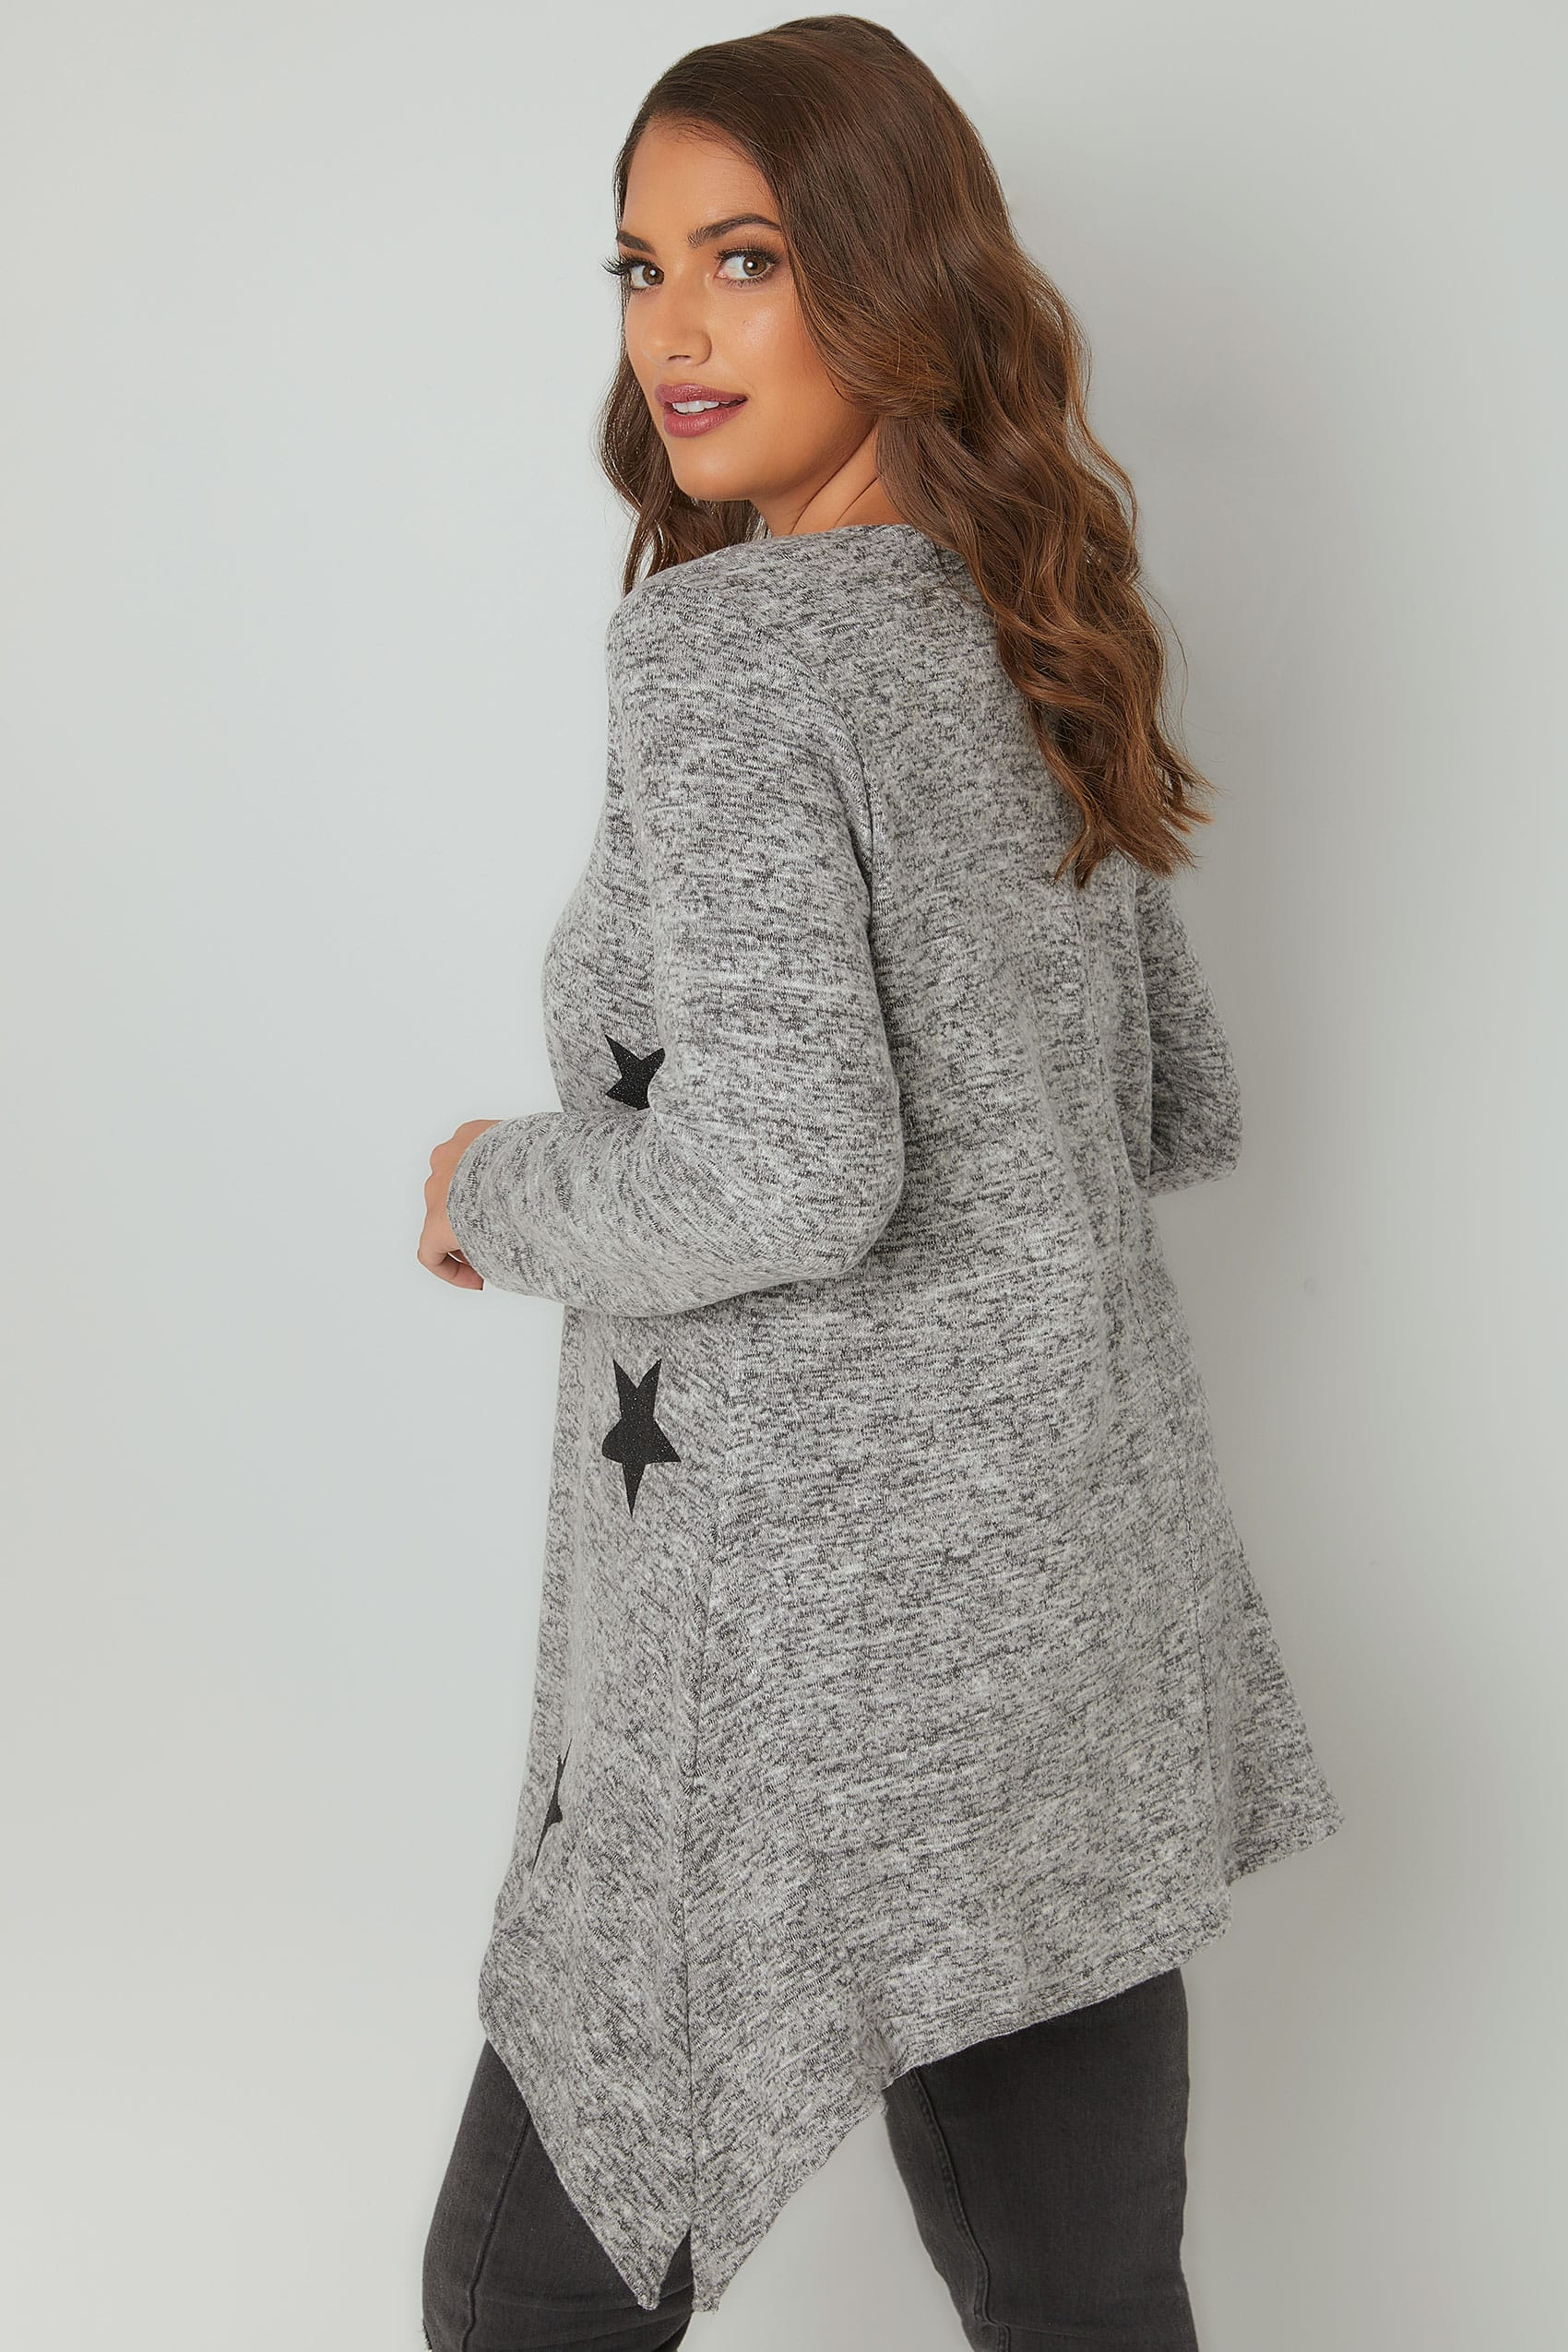 Grey Textured Star Print Longline Knitted Top With Hanky Hem